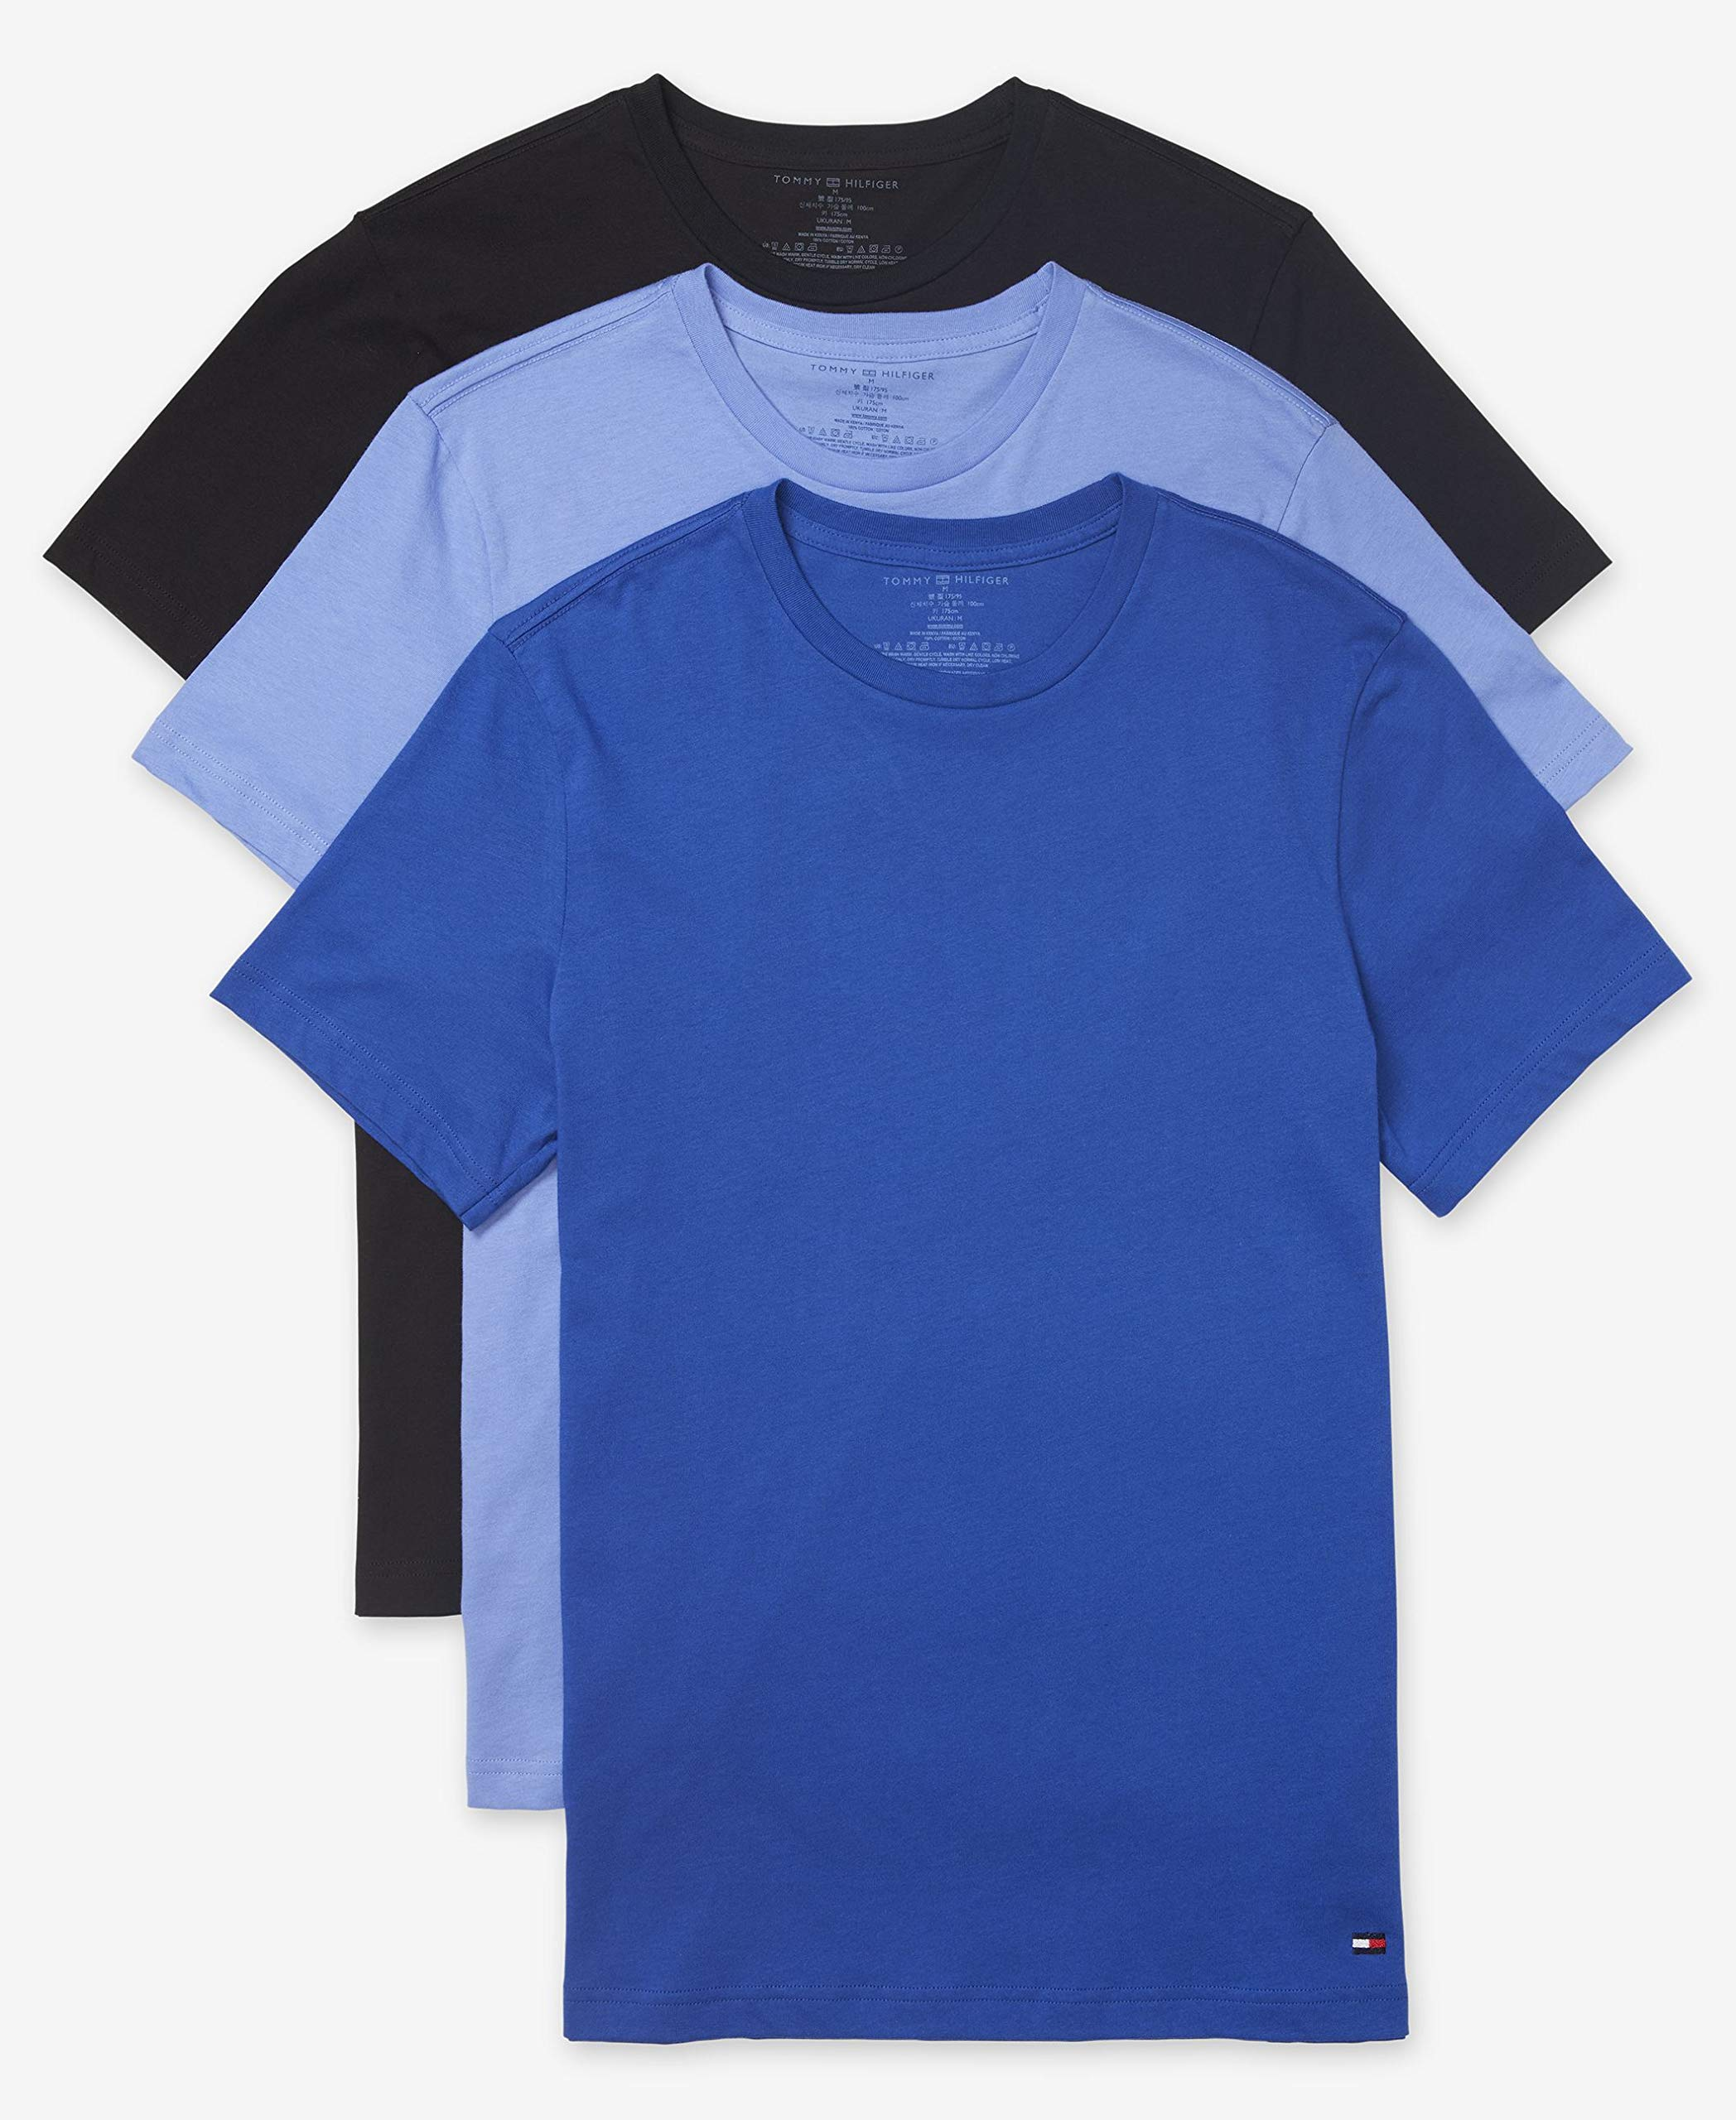 Tommy Hilfiger Men's Undershirts Multipack Cotton Classics Crew Neck T-Shirt, Ink Blue (Multi 3 Pack), X-Large by Tommy Hilfiger